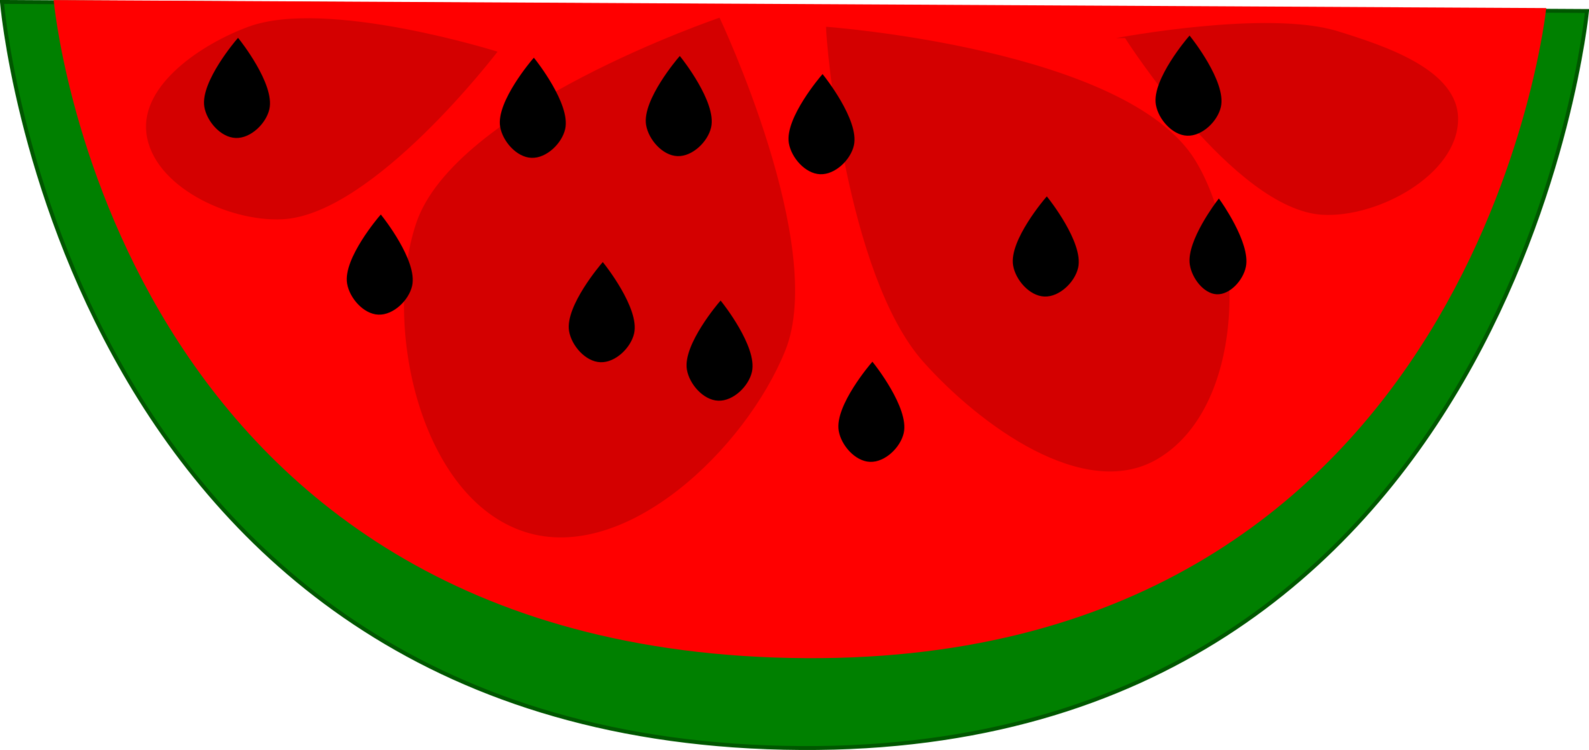 Watermelon clipart smiling watermelon. Cucumber food free commercial